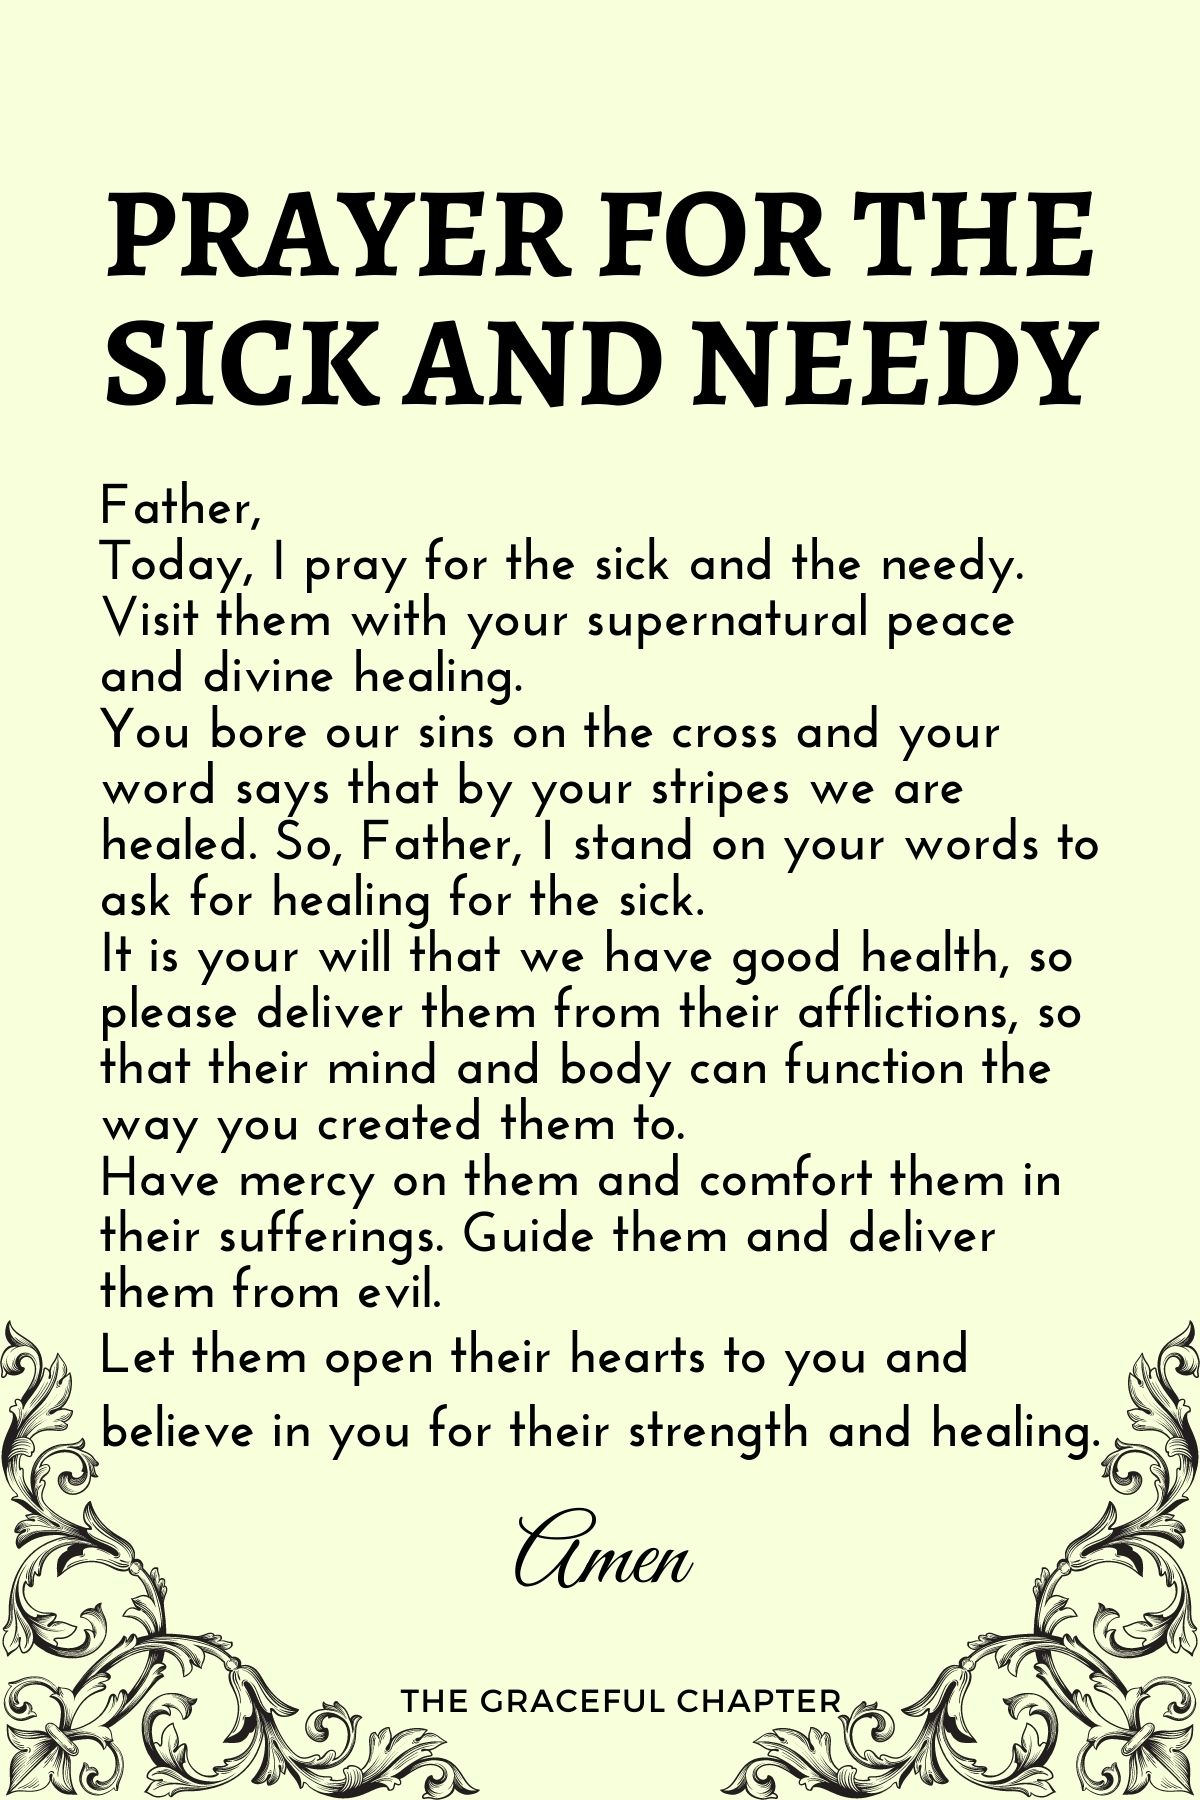 Prayer for the sick and needy